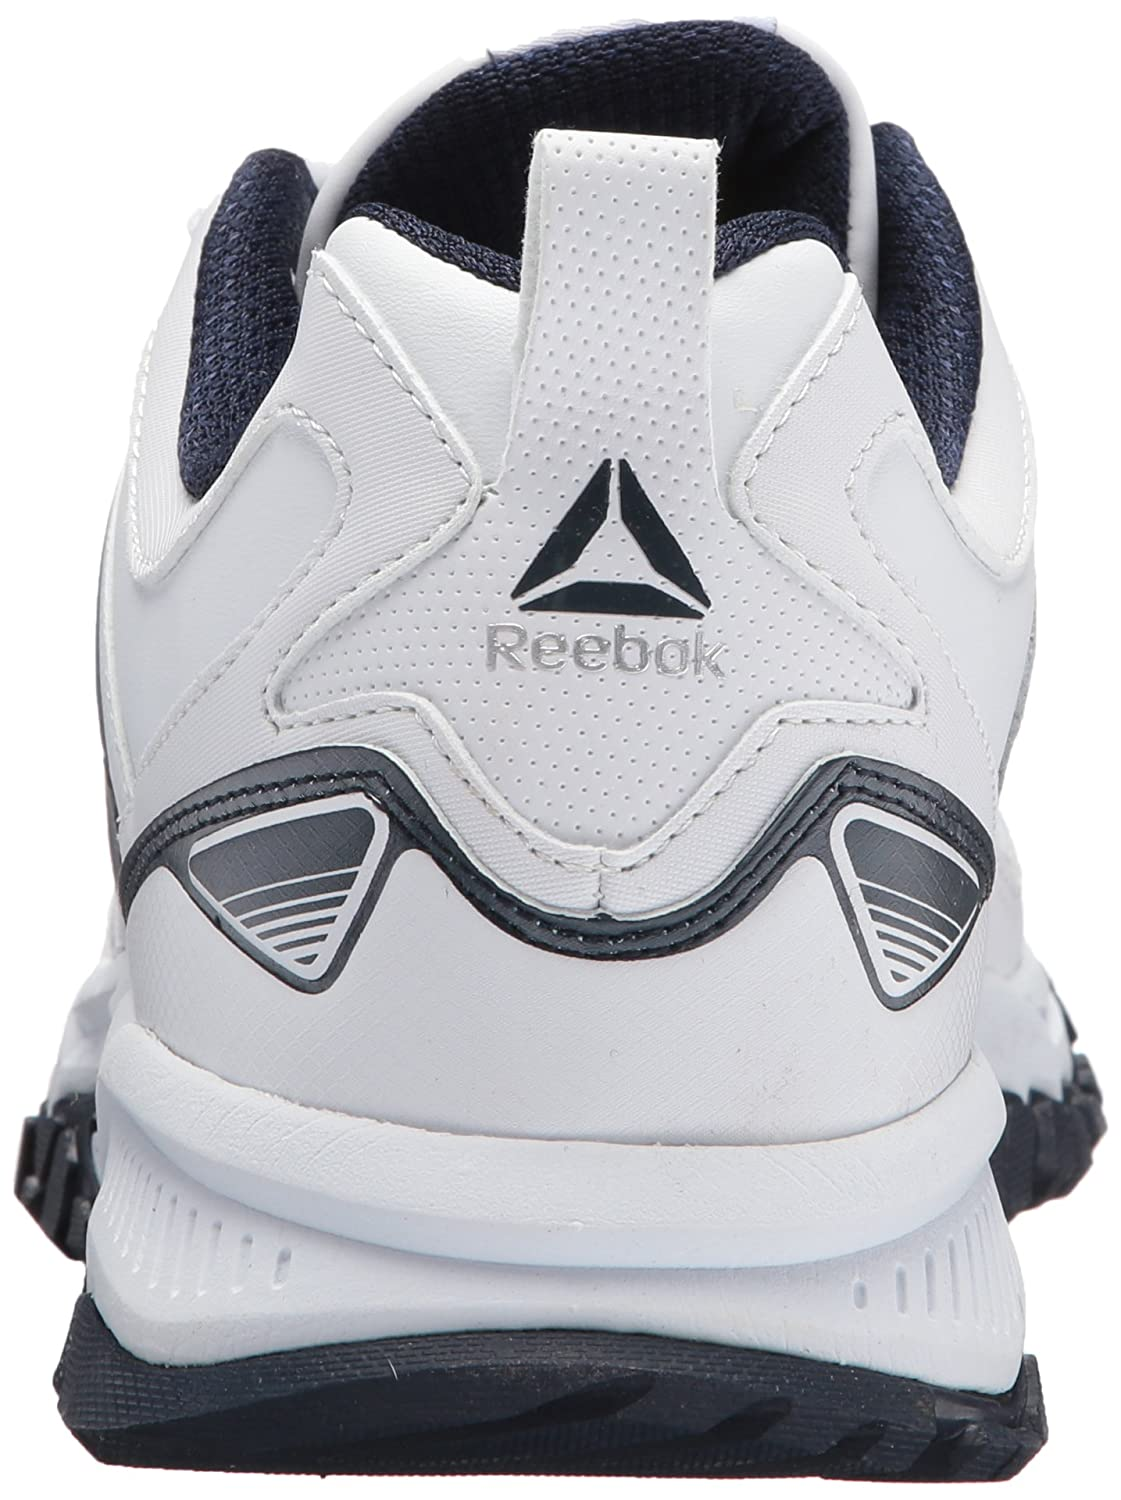 4db8672c4b8 Reebok Ridgerider Leather Sneaker White Coll. Navy 9 D(M) US  Amazon.in   Shoes   Handbags